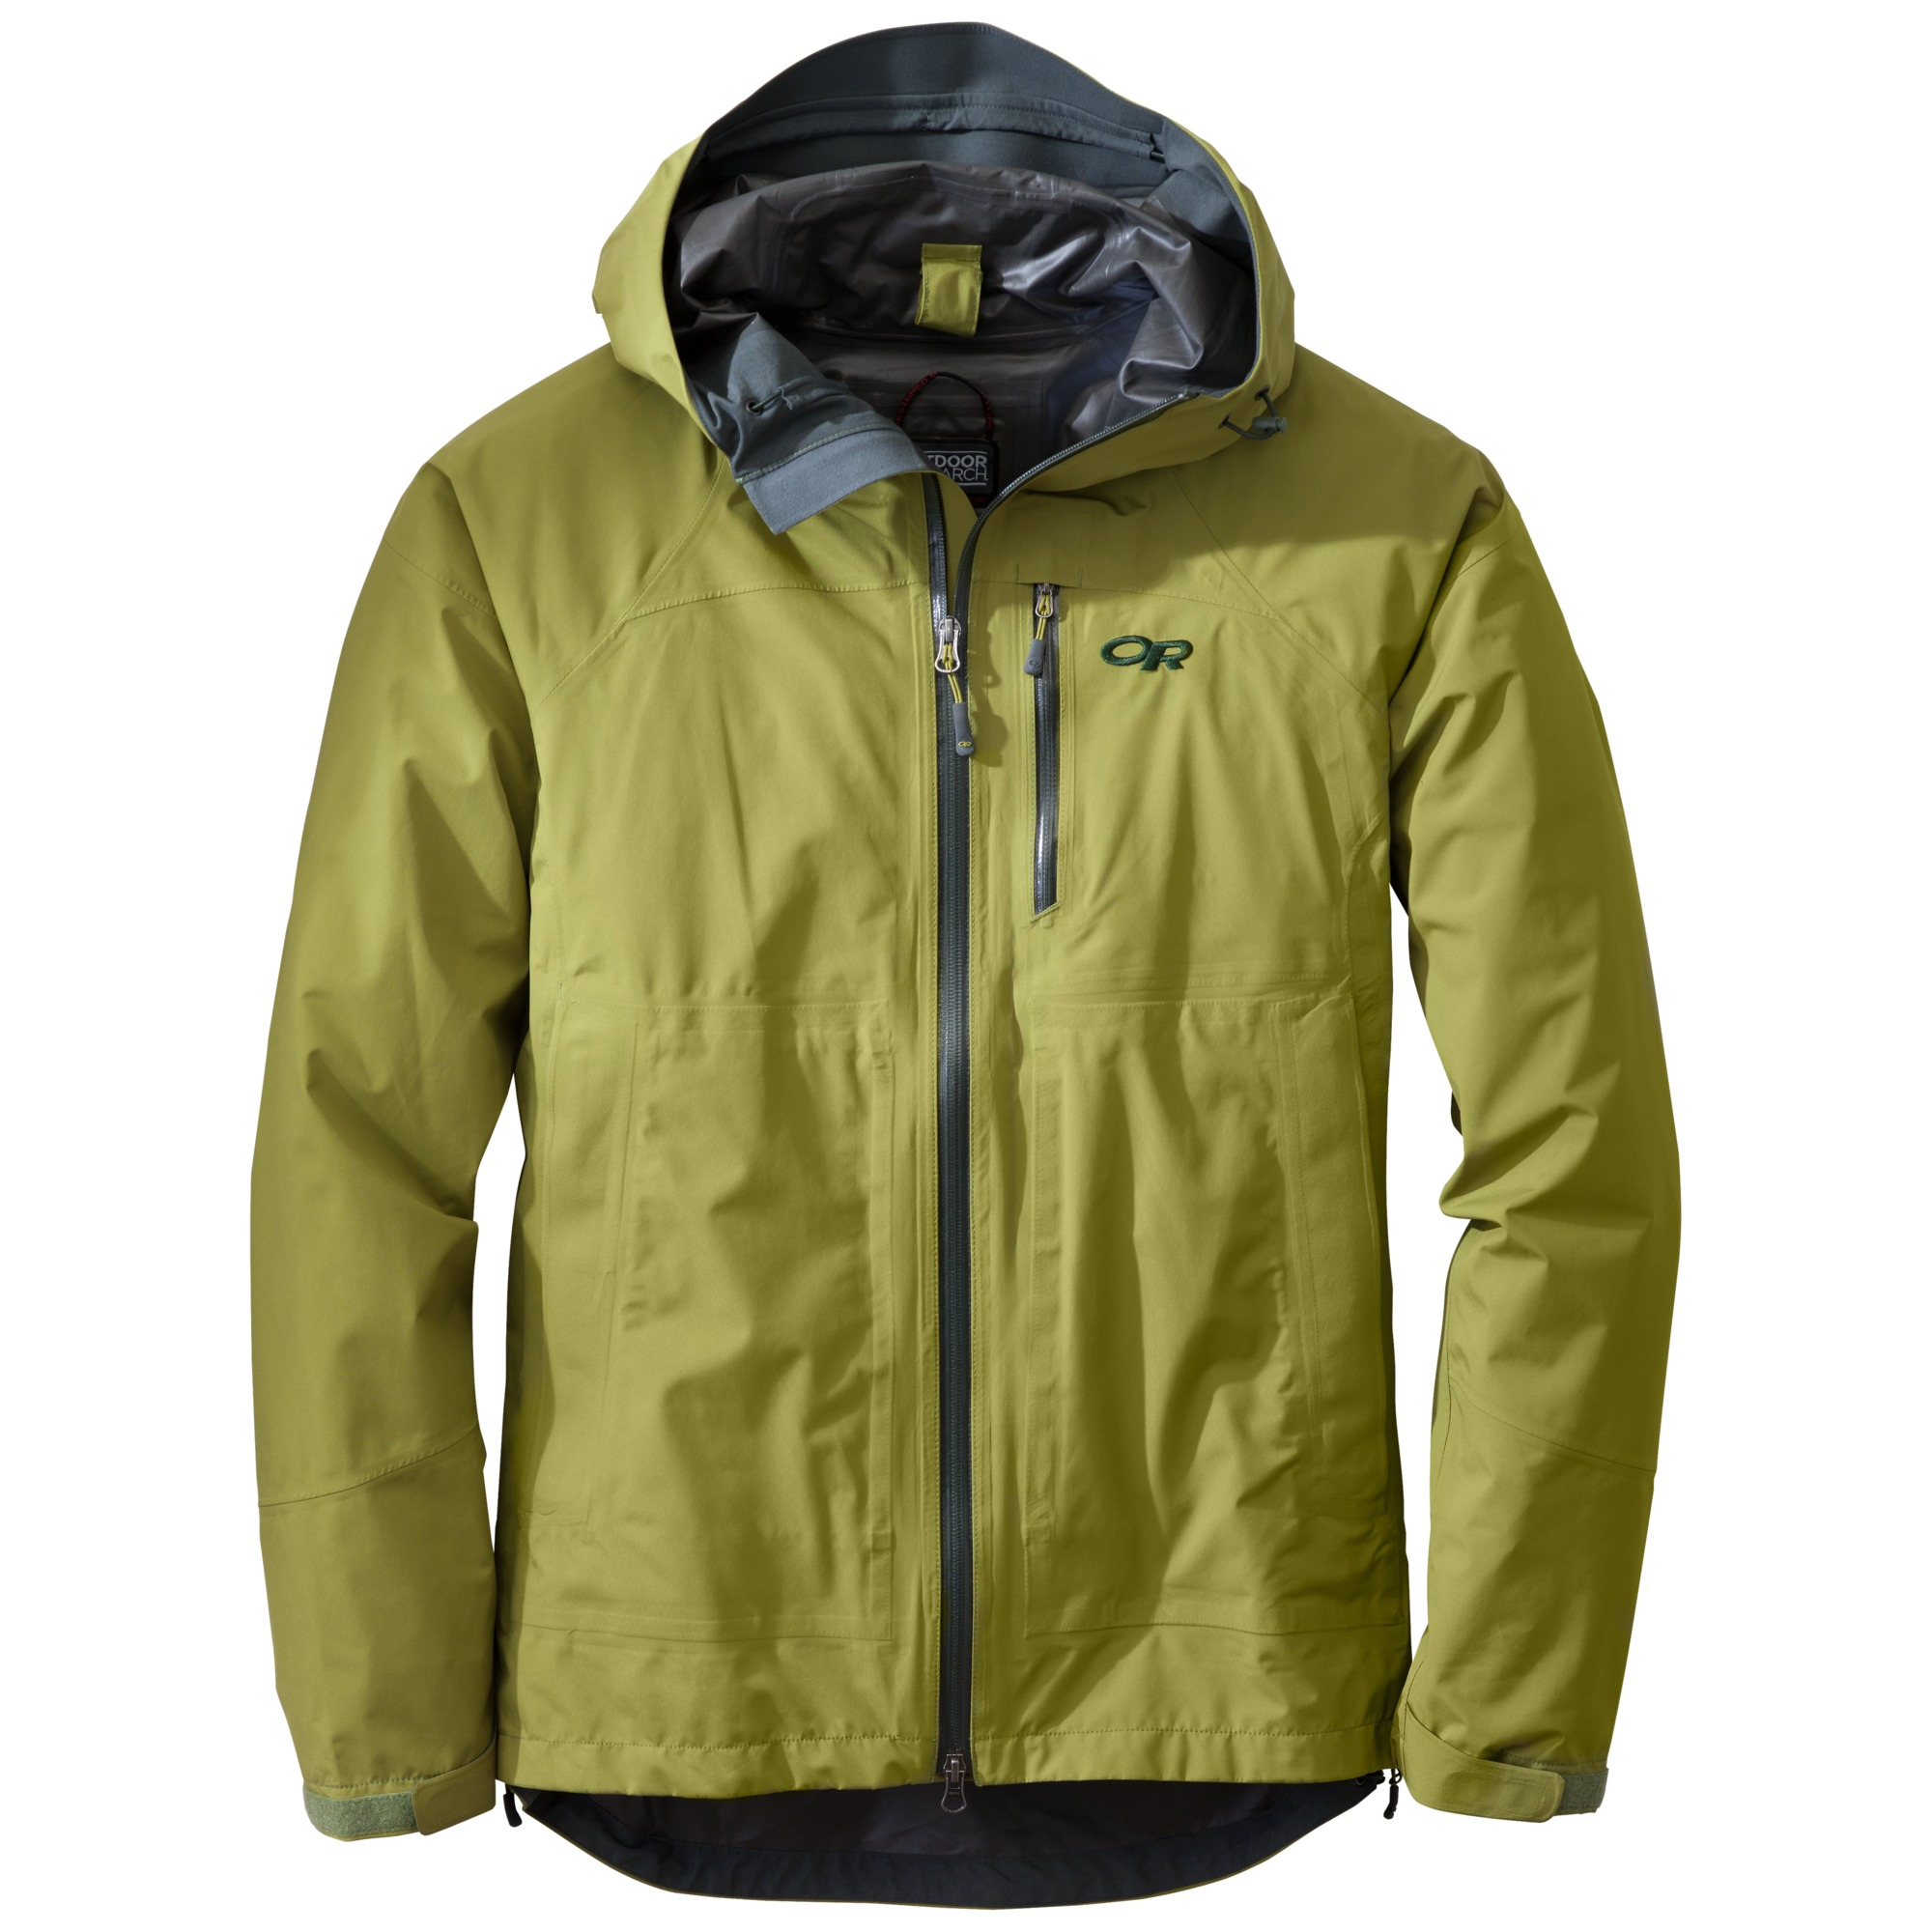 06b4ad2716568 Men's Foray Jacket - hops | Outdoor Research